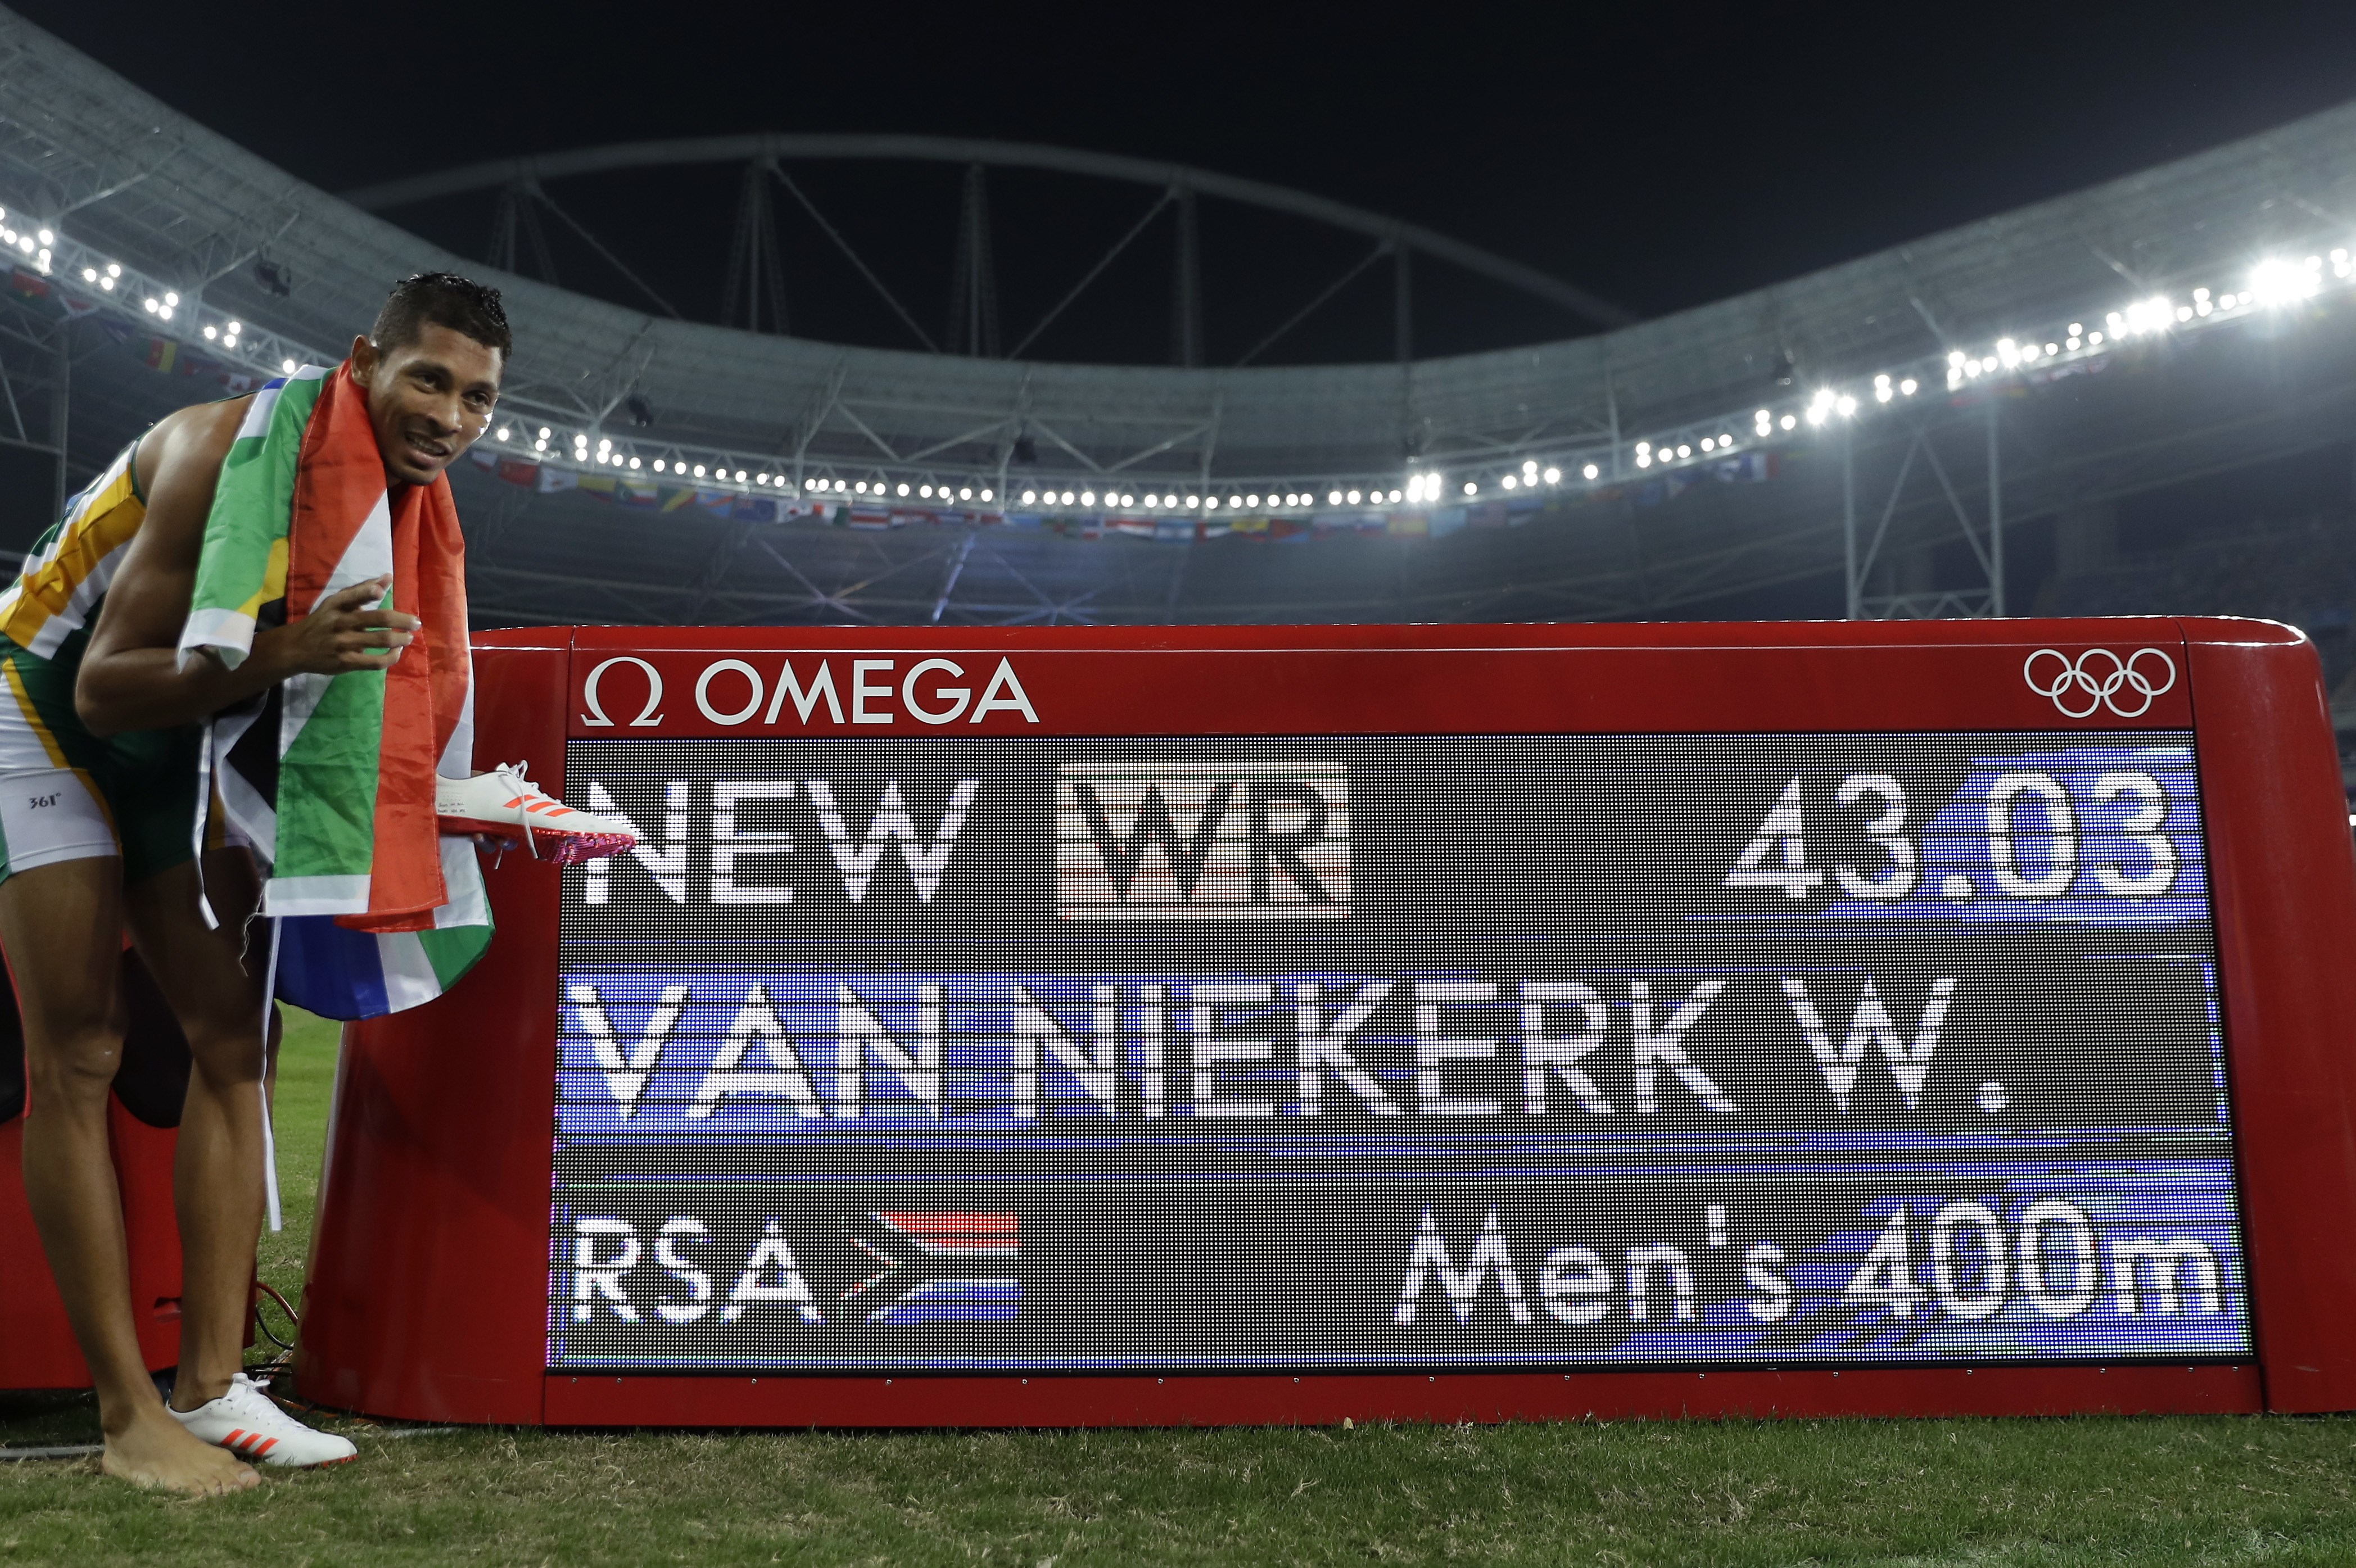 South Africa's Wayde Van Niekerk celebrates after winning the gold medal during the athletics competitions in the Olympic stadium of the 2016 Summer Olympics in Rio de Janeiro, Brazil, Sunday, Aug. 14, 2016. (AP Photo/Matt Slocum)